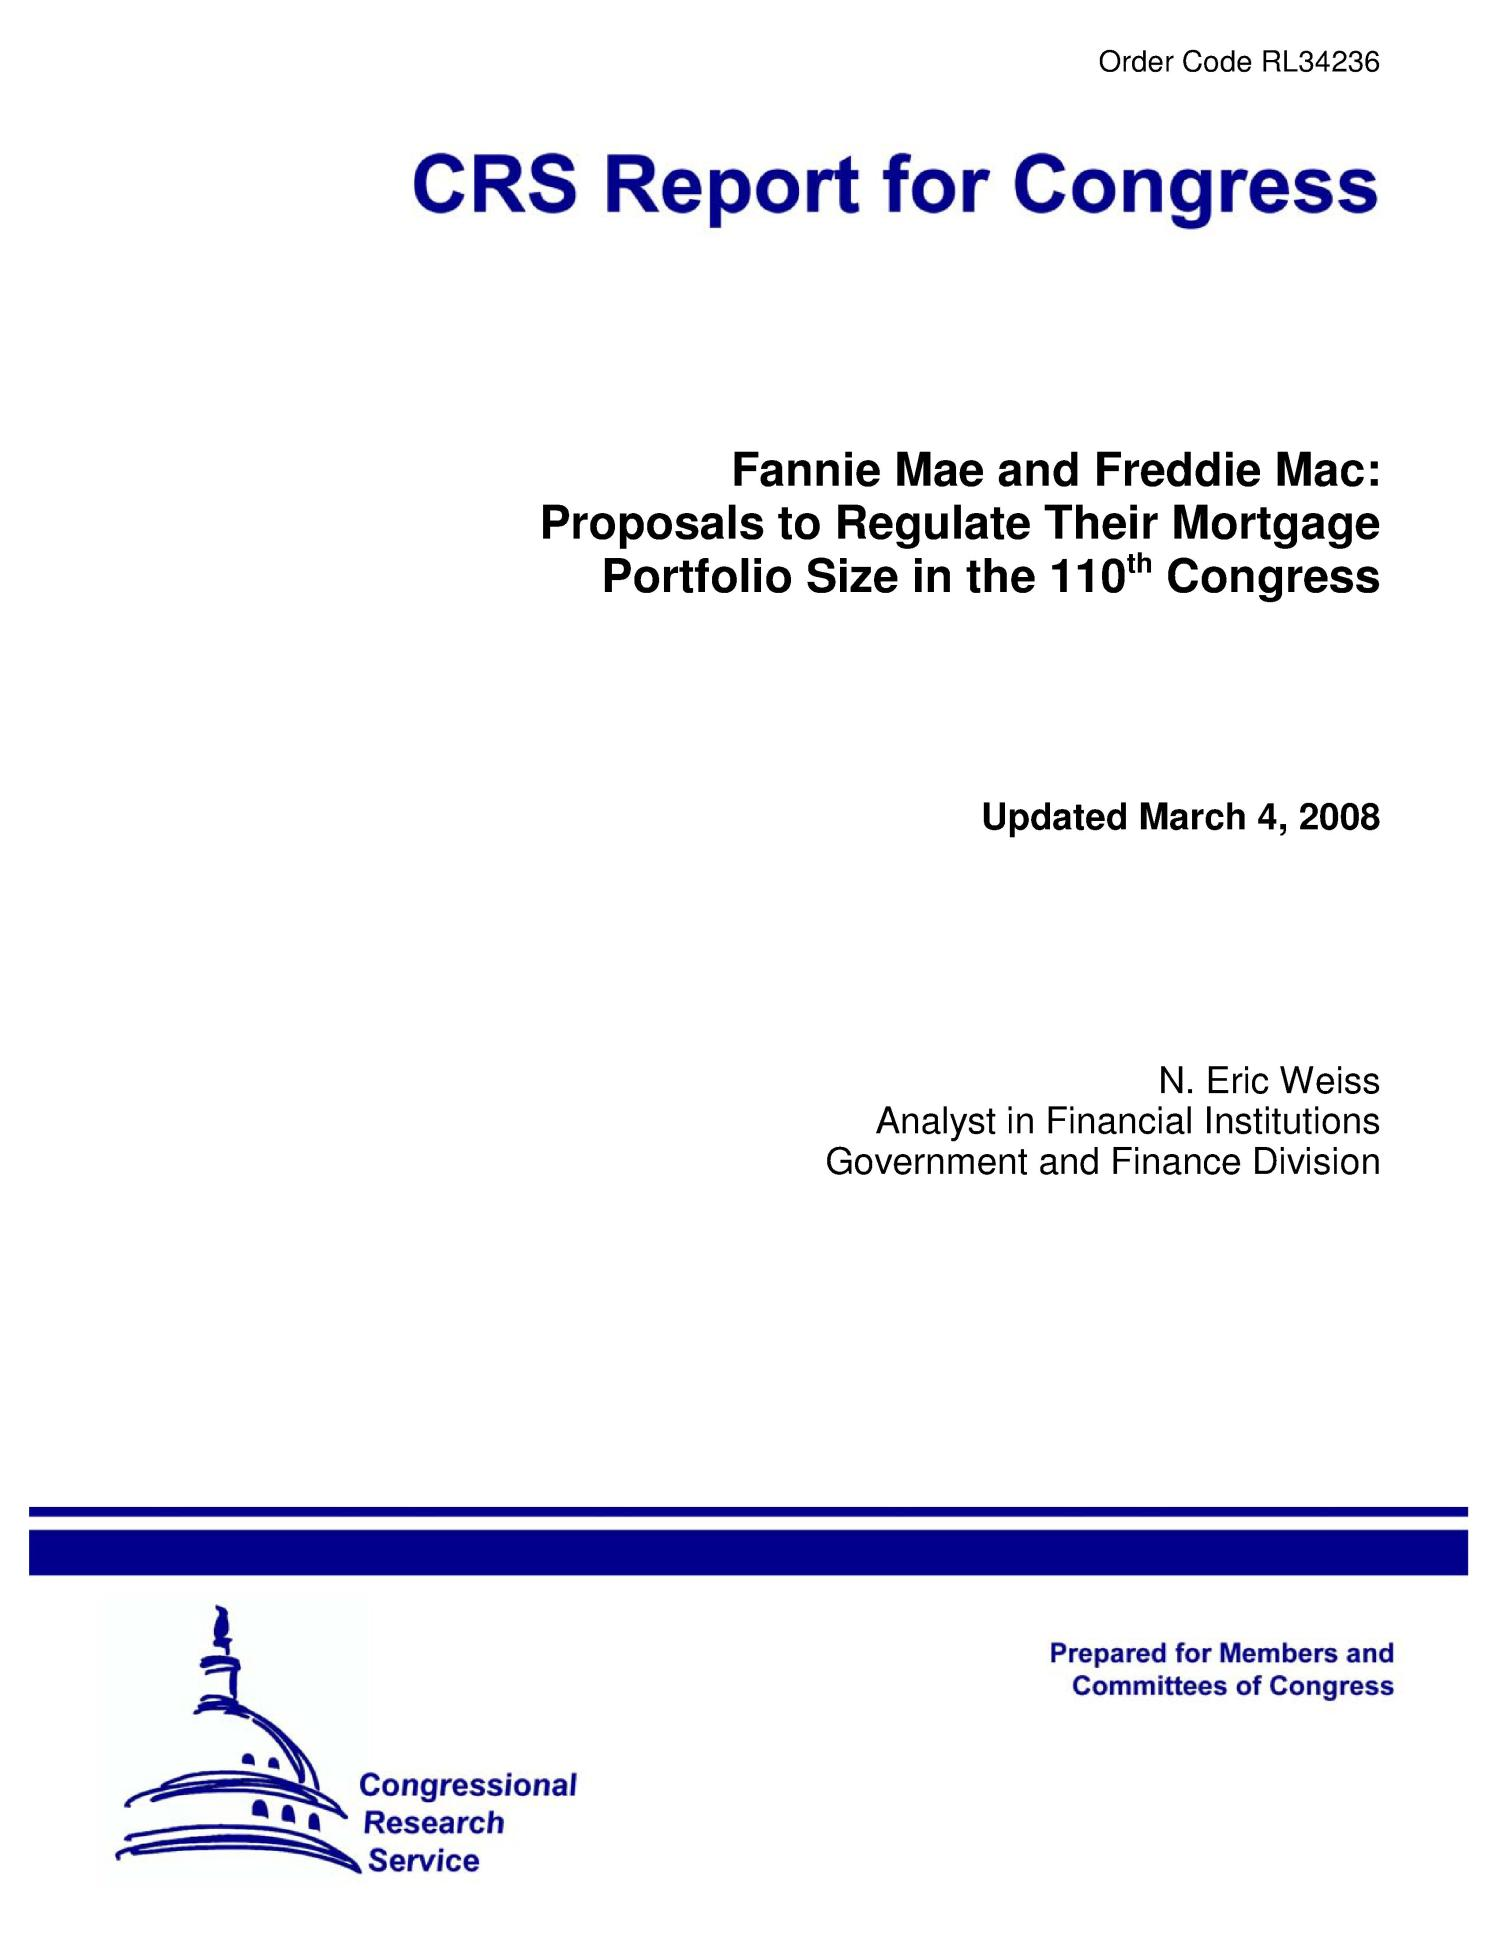 Fannie Mae and Freddie Mac: Proposals to Regulate Their Mortgage Portfolio Size in the 110th Congress                                                                                                      [Sequence #]: 1 of 13